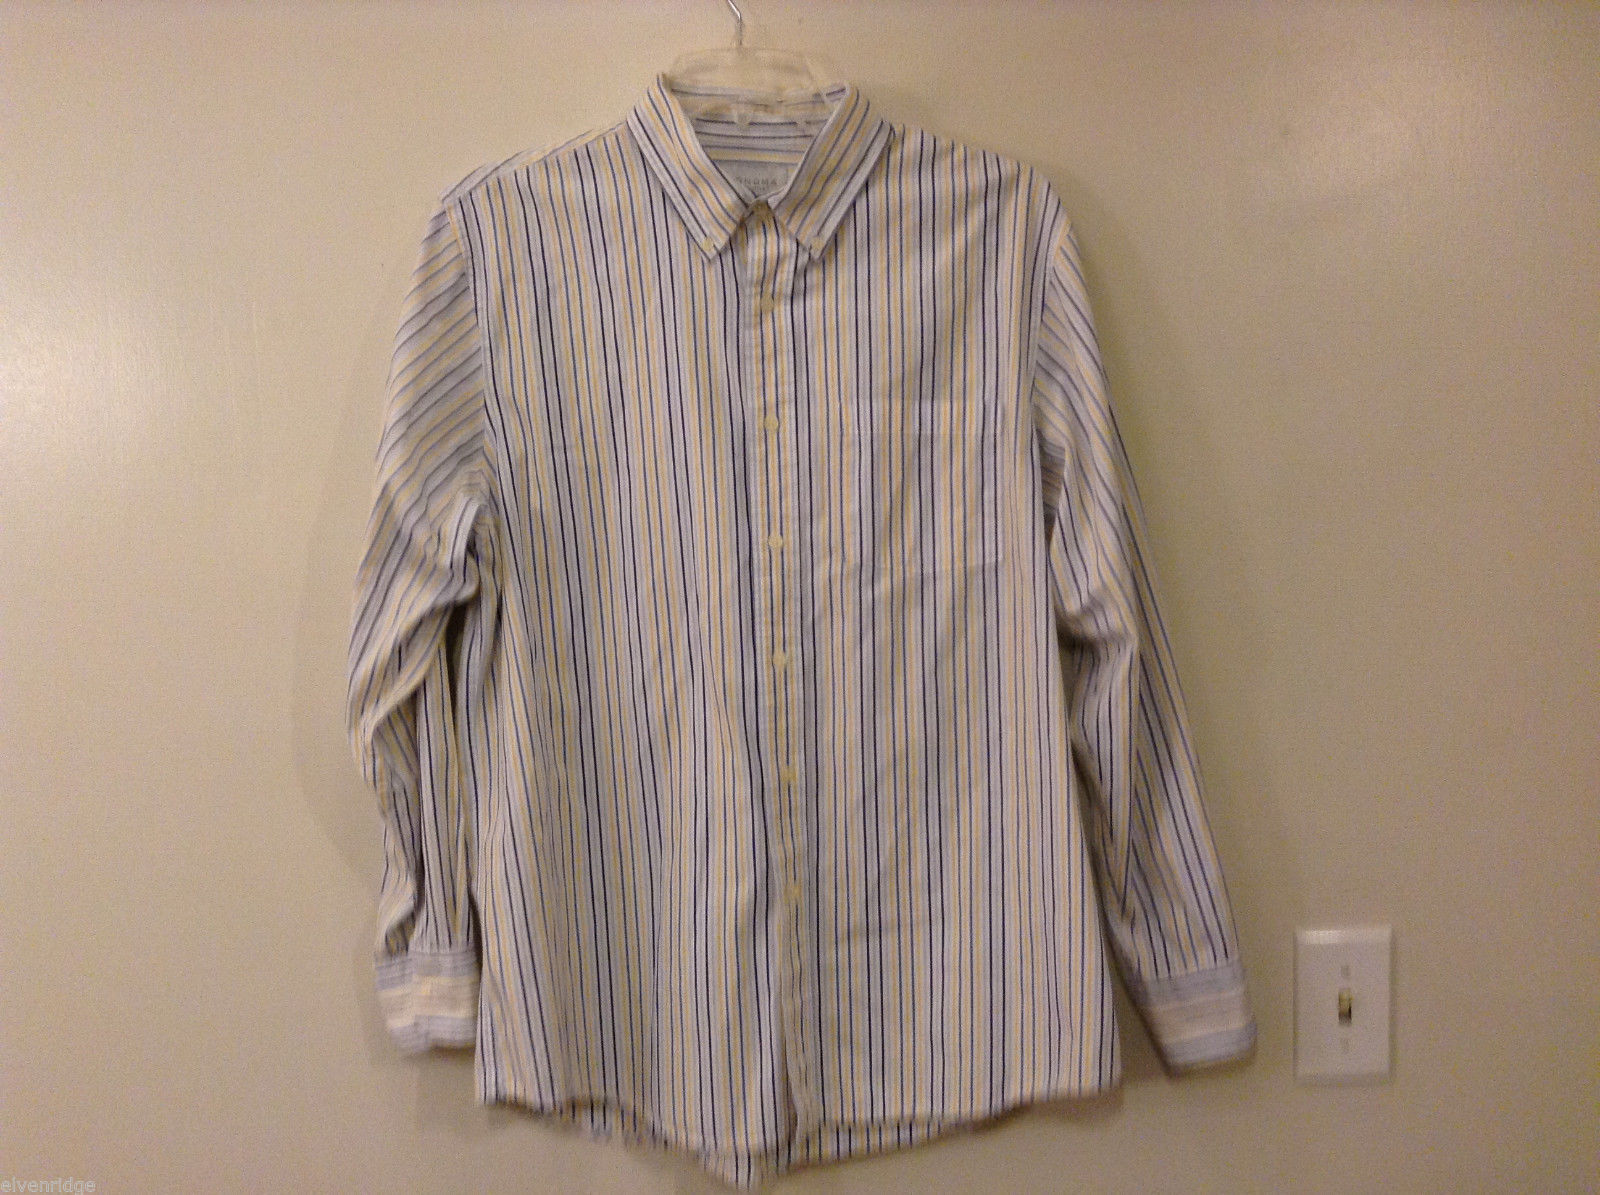 Sonoma Men's Size L Button-Down Point Collar Shirt White + Blue & Yellow Stripes